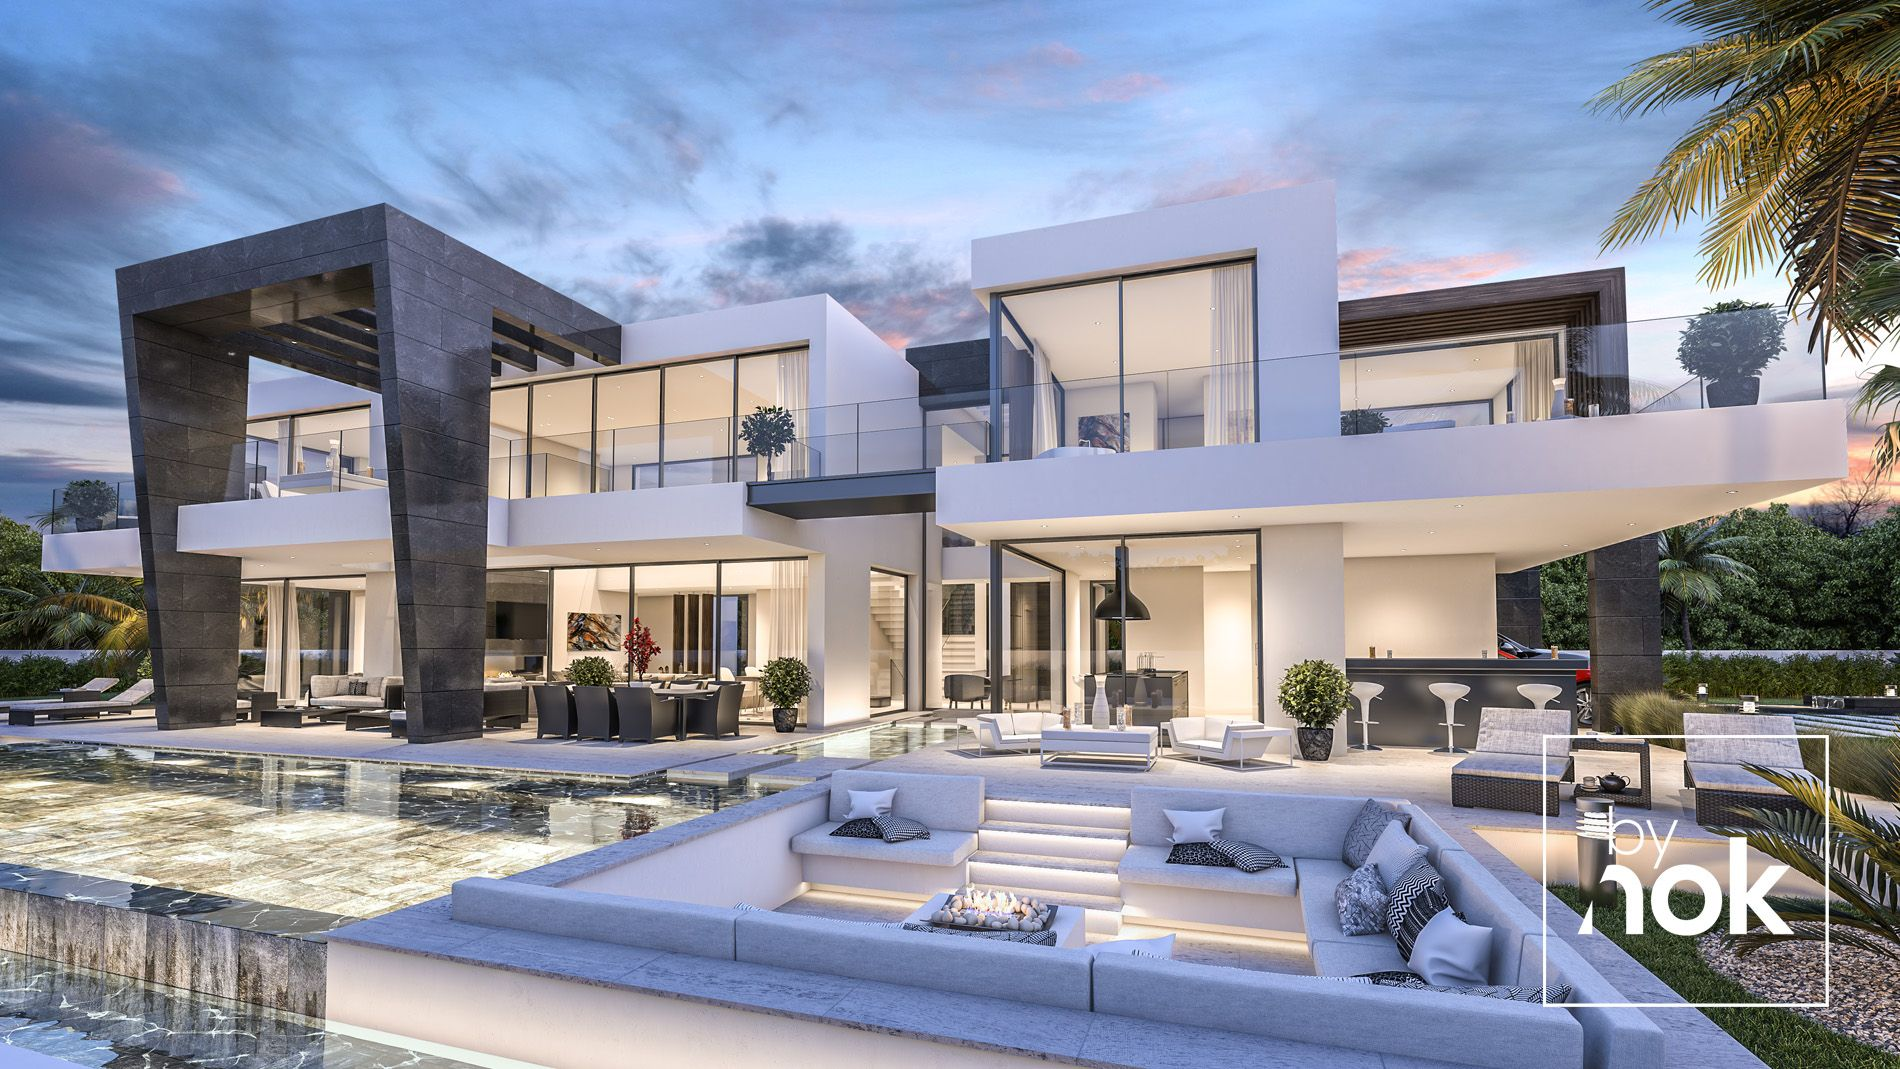 Dream villa by nok designed by kristinabrateng available for sale in belair urbanization estepona costa del sol